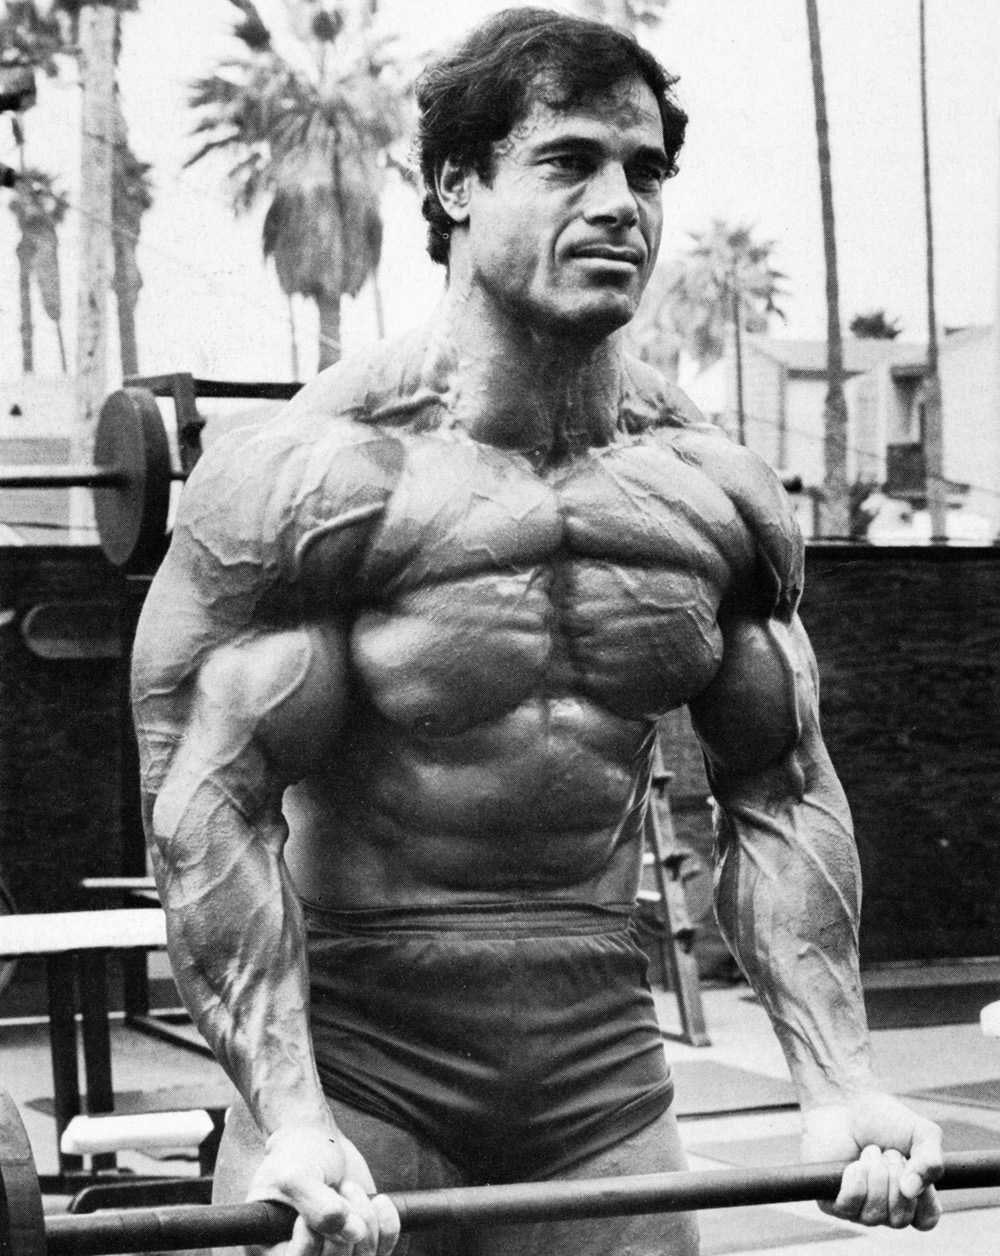 Franco Columbo | Age • Height • Weight • Images • Bio • Diet • Workout